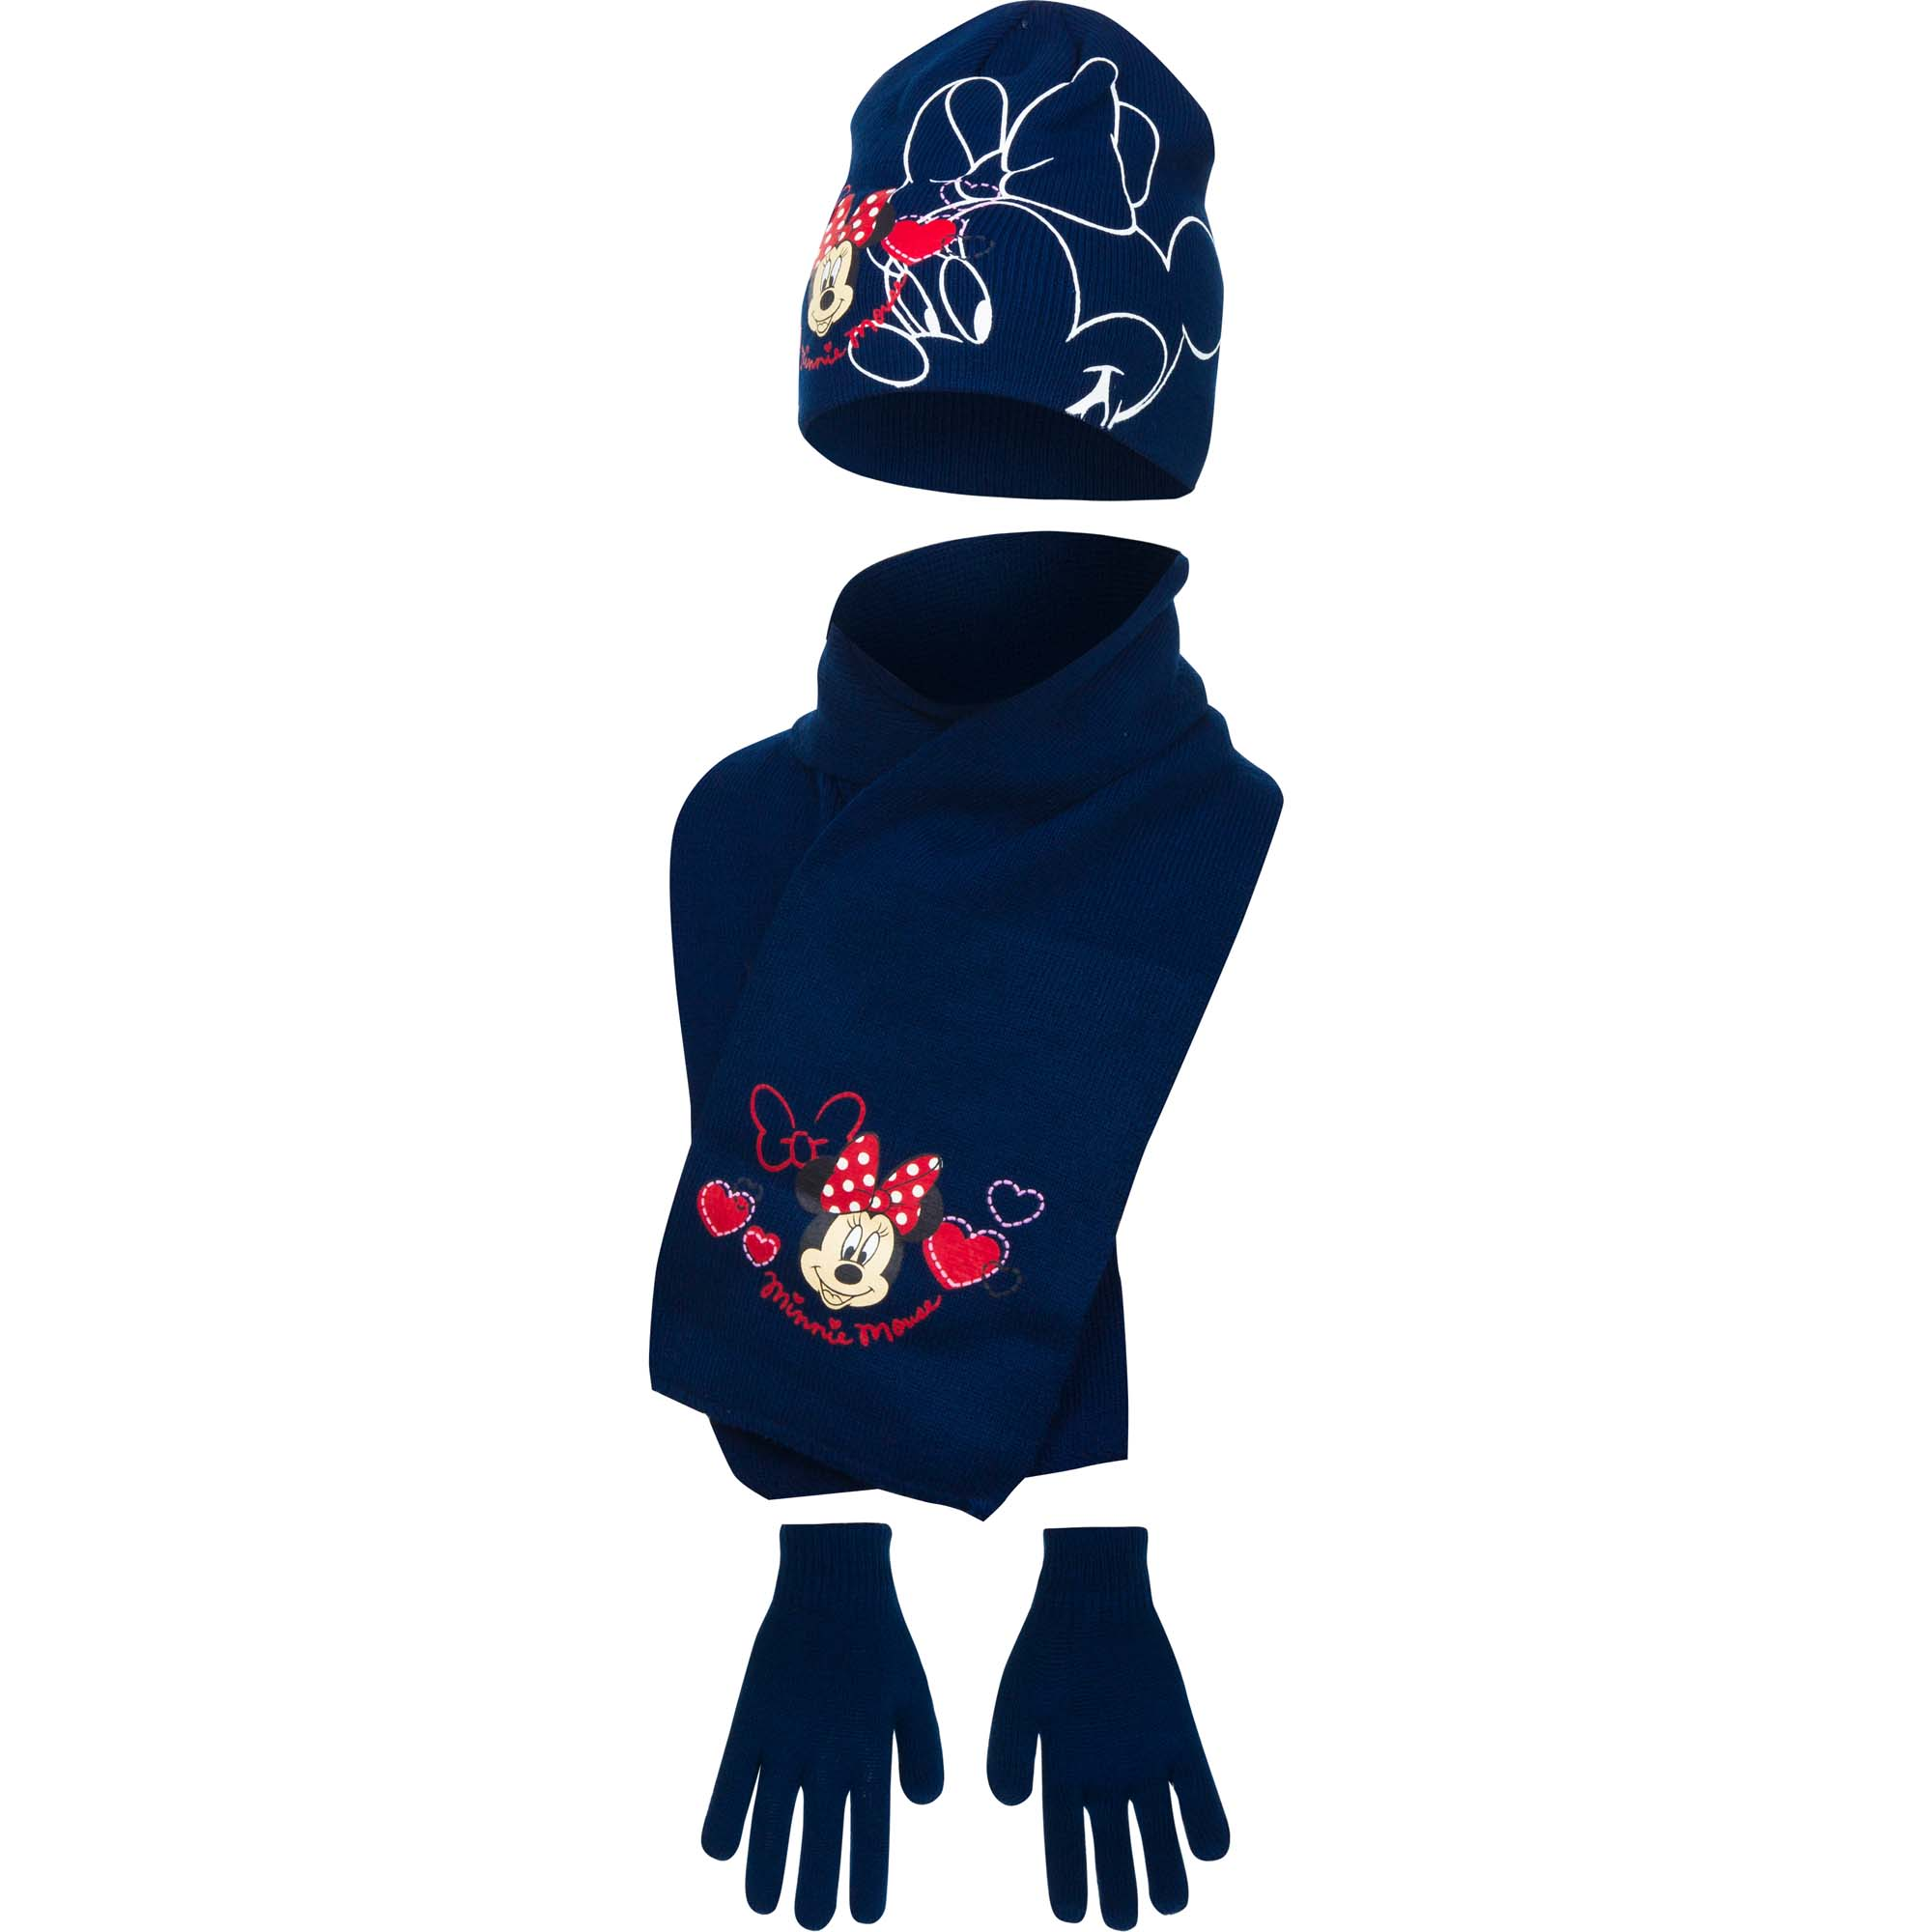 fa67476eb11 Disney minnie mouse childrens girls winter hat scarf and gloves set jpg  2000x2000 Minnie mouse scarf